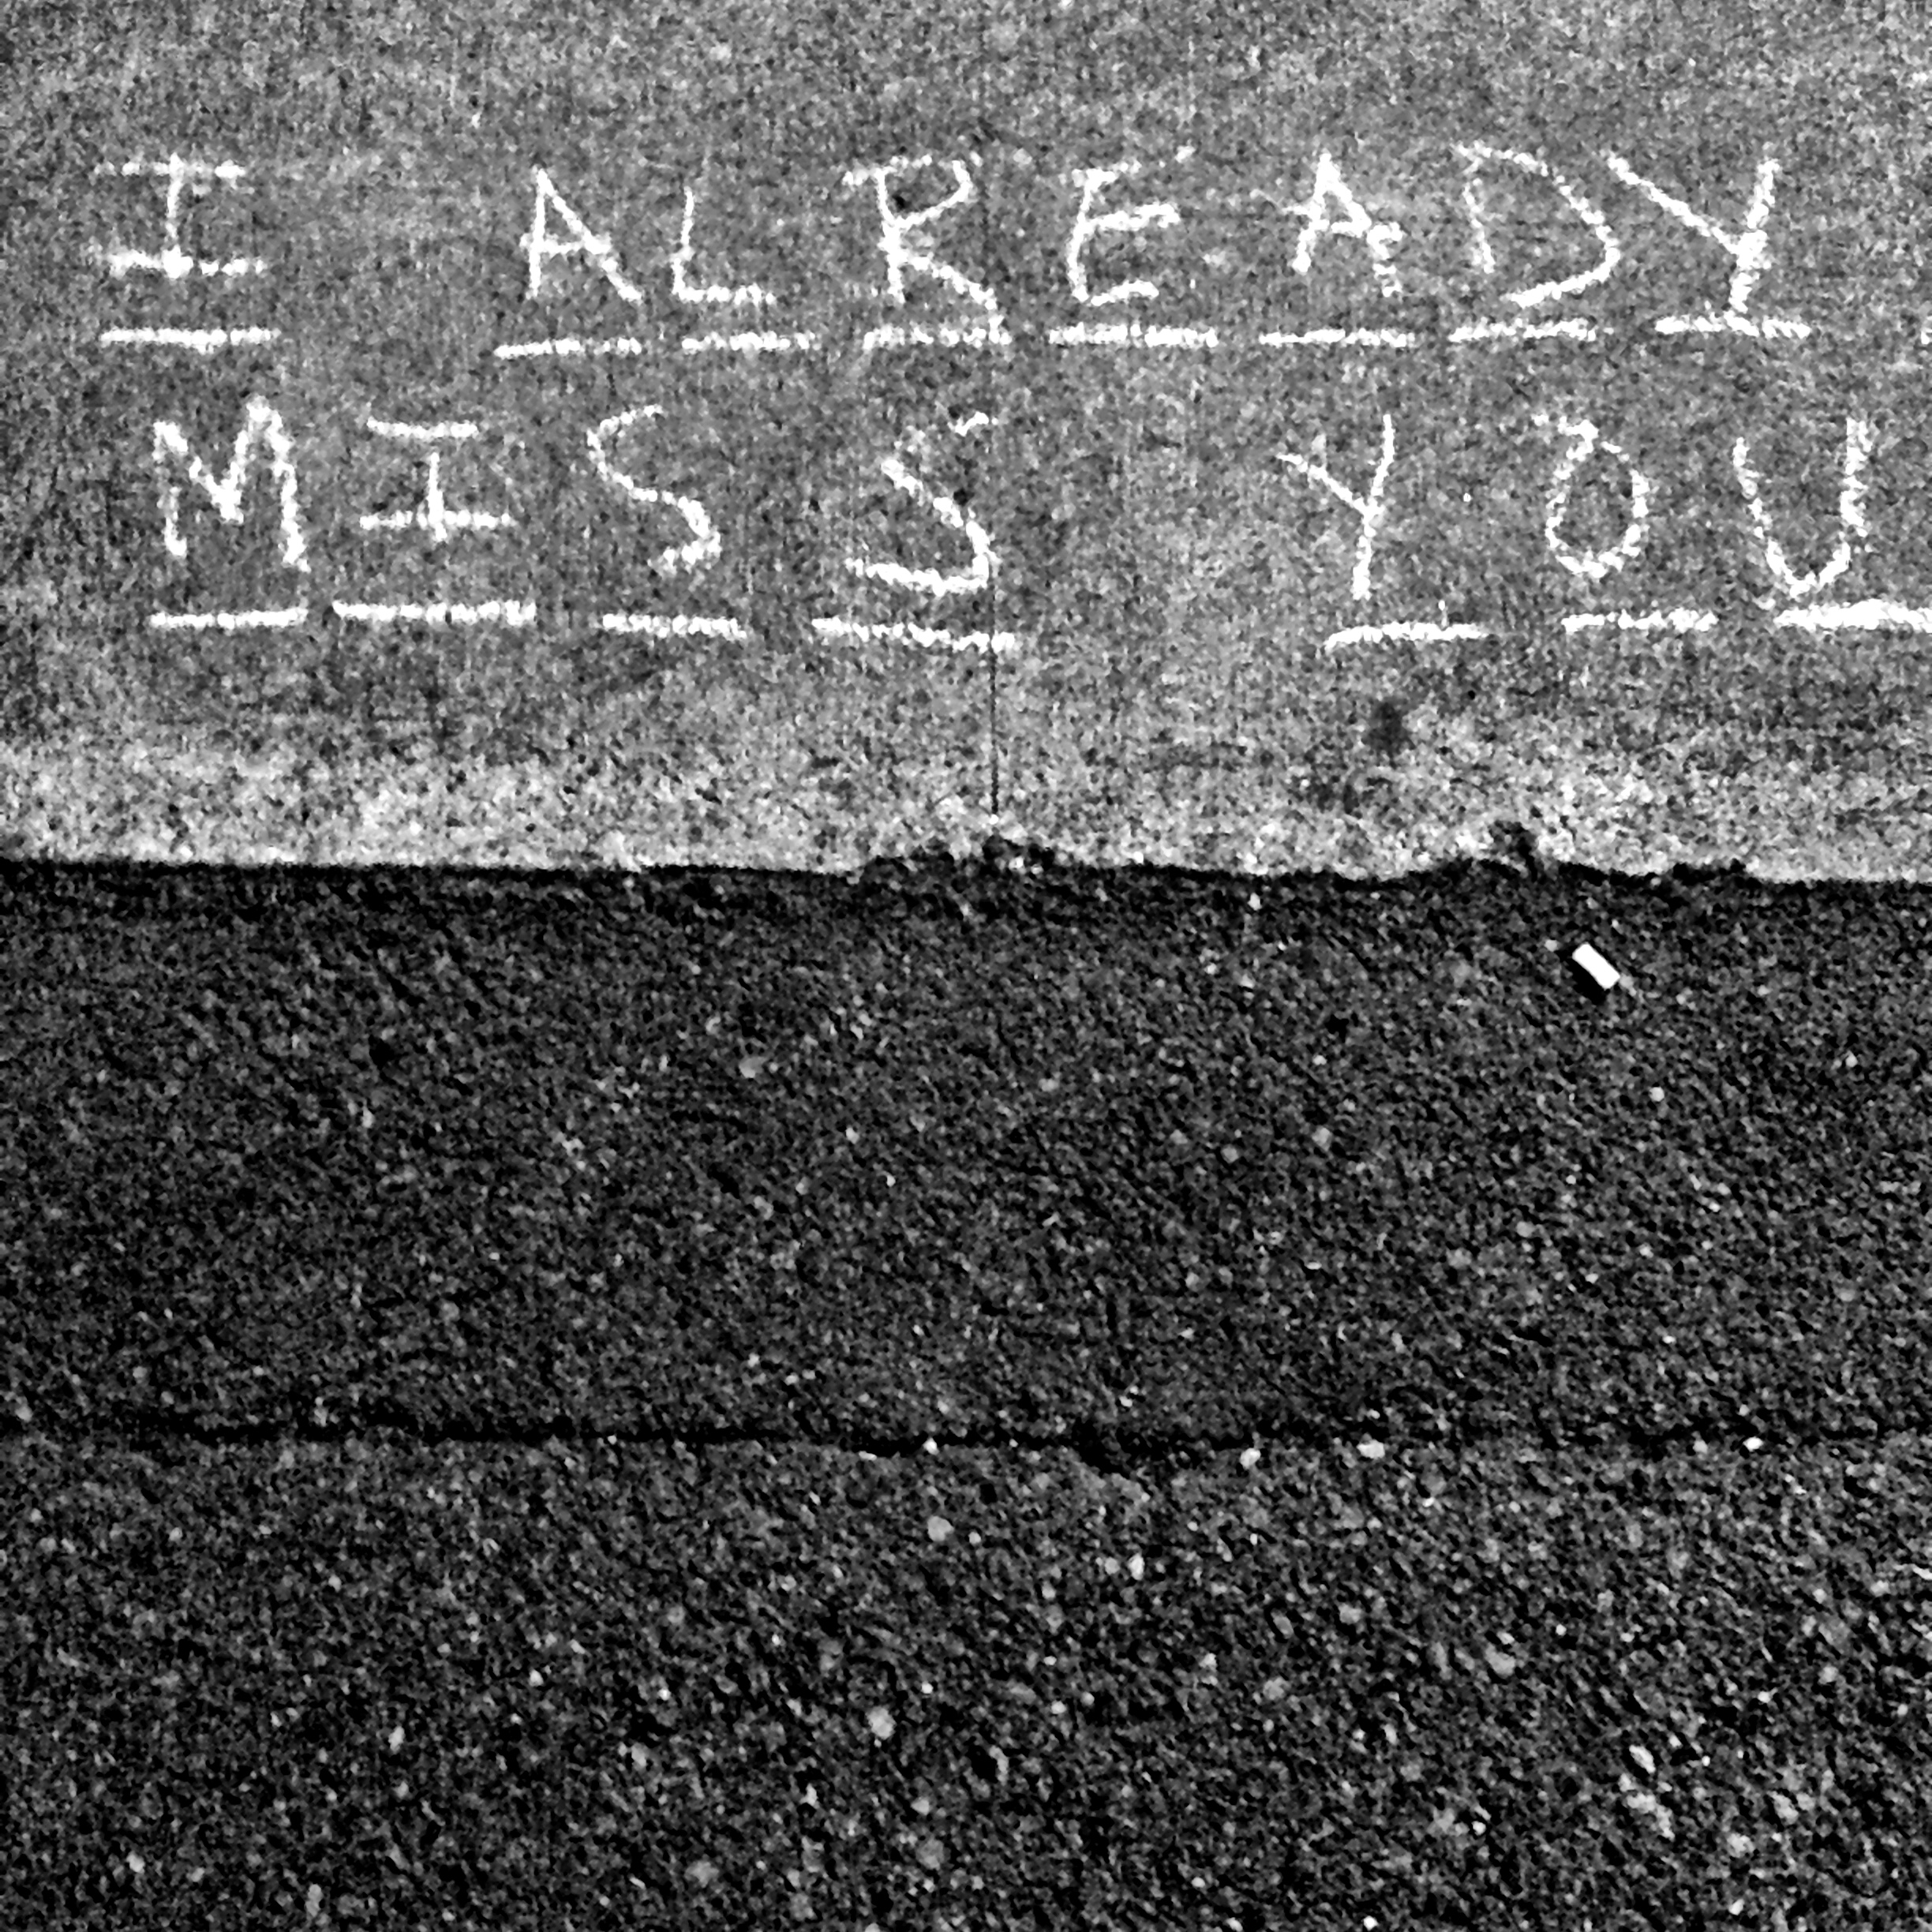 A photograph of a sidewalk on which some words have been written in chalk